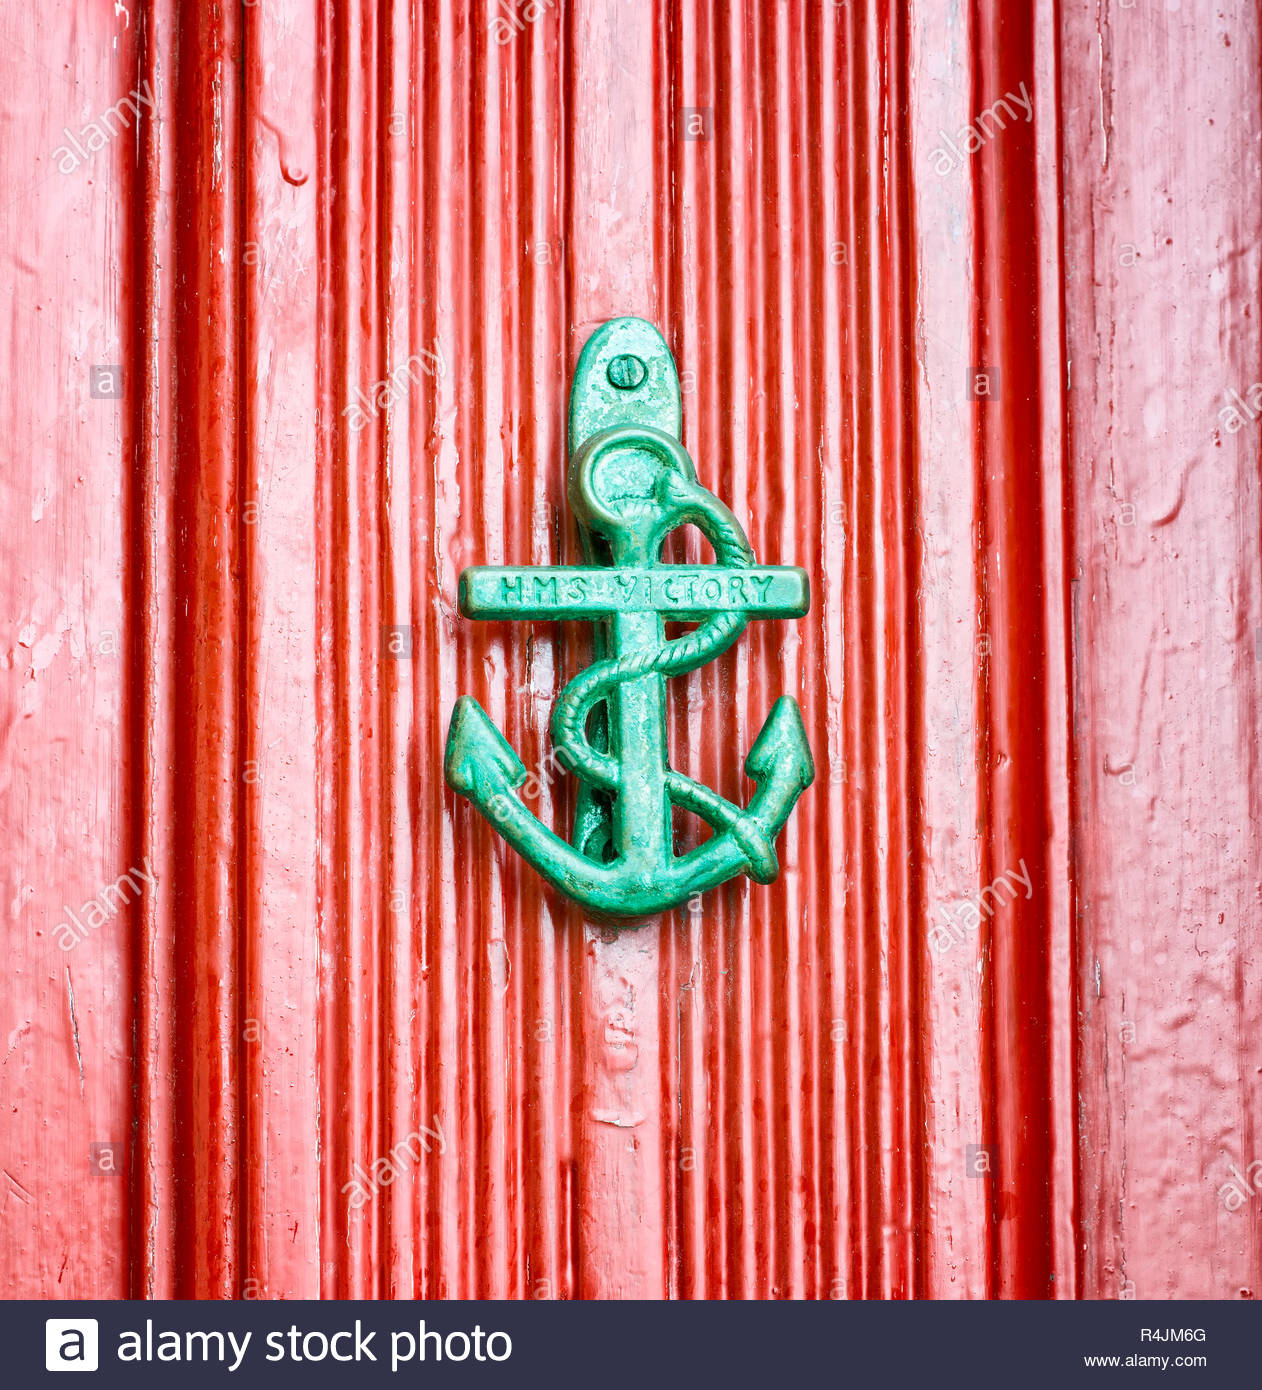 Antique anchor shaped knokcer on a red vintage door - Stock Image